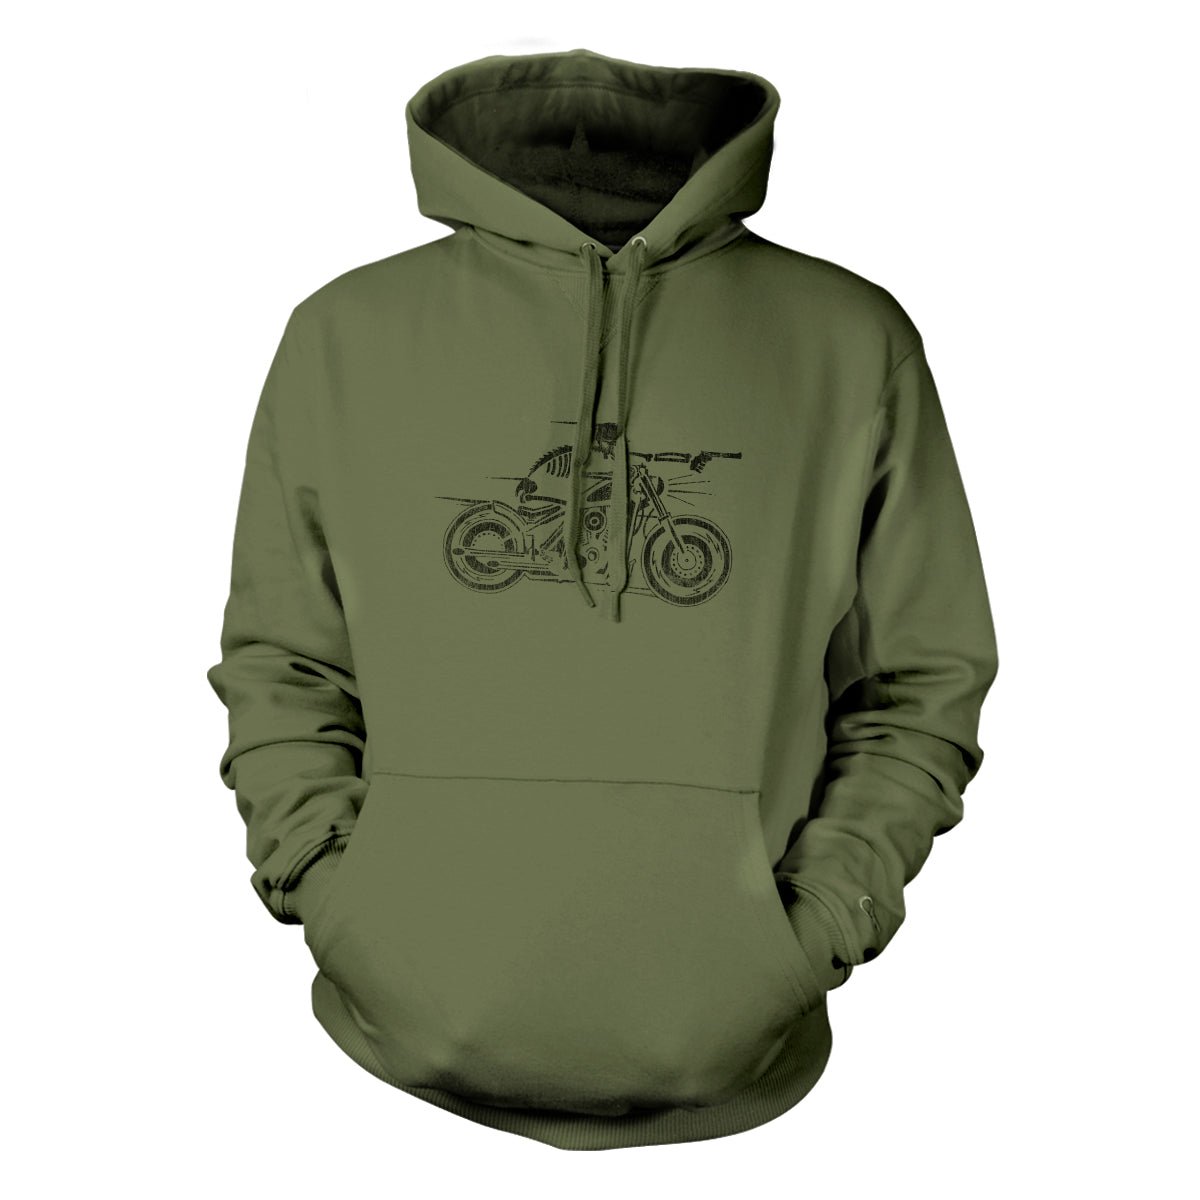 Nomad - Hoodie - Military Green - T-Shirts - Pipe Hitters Union